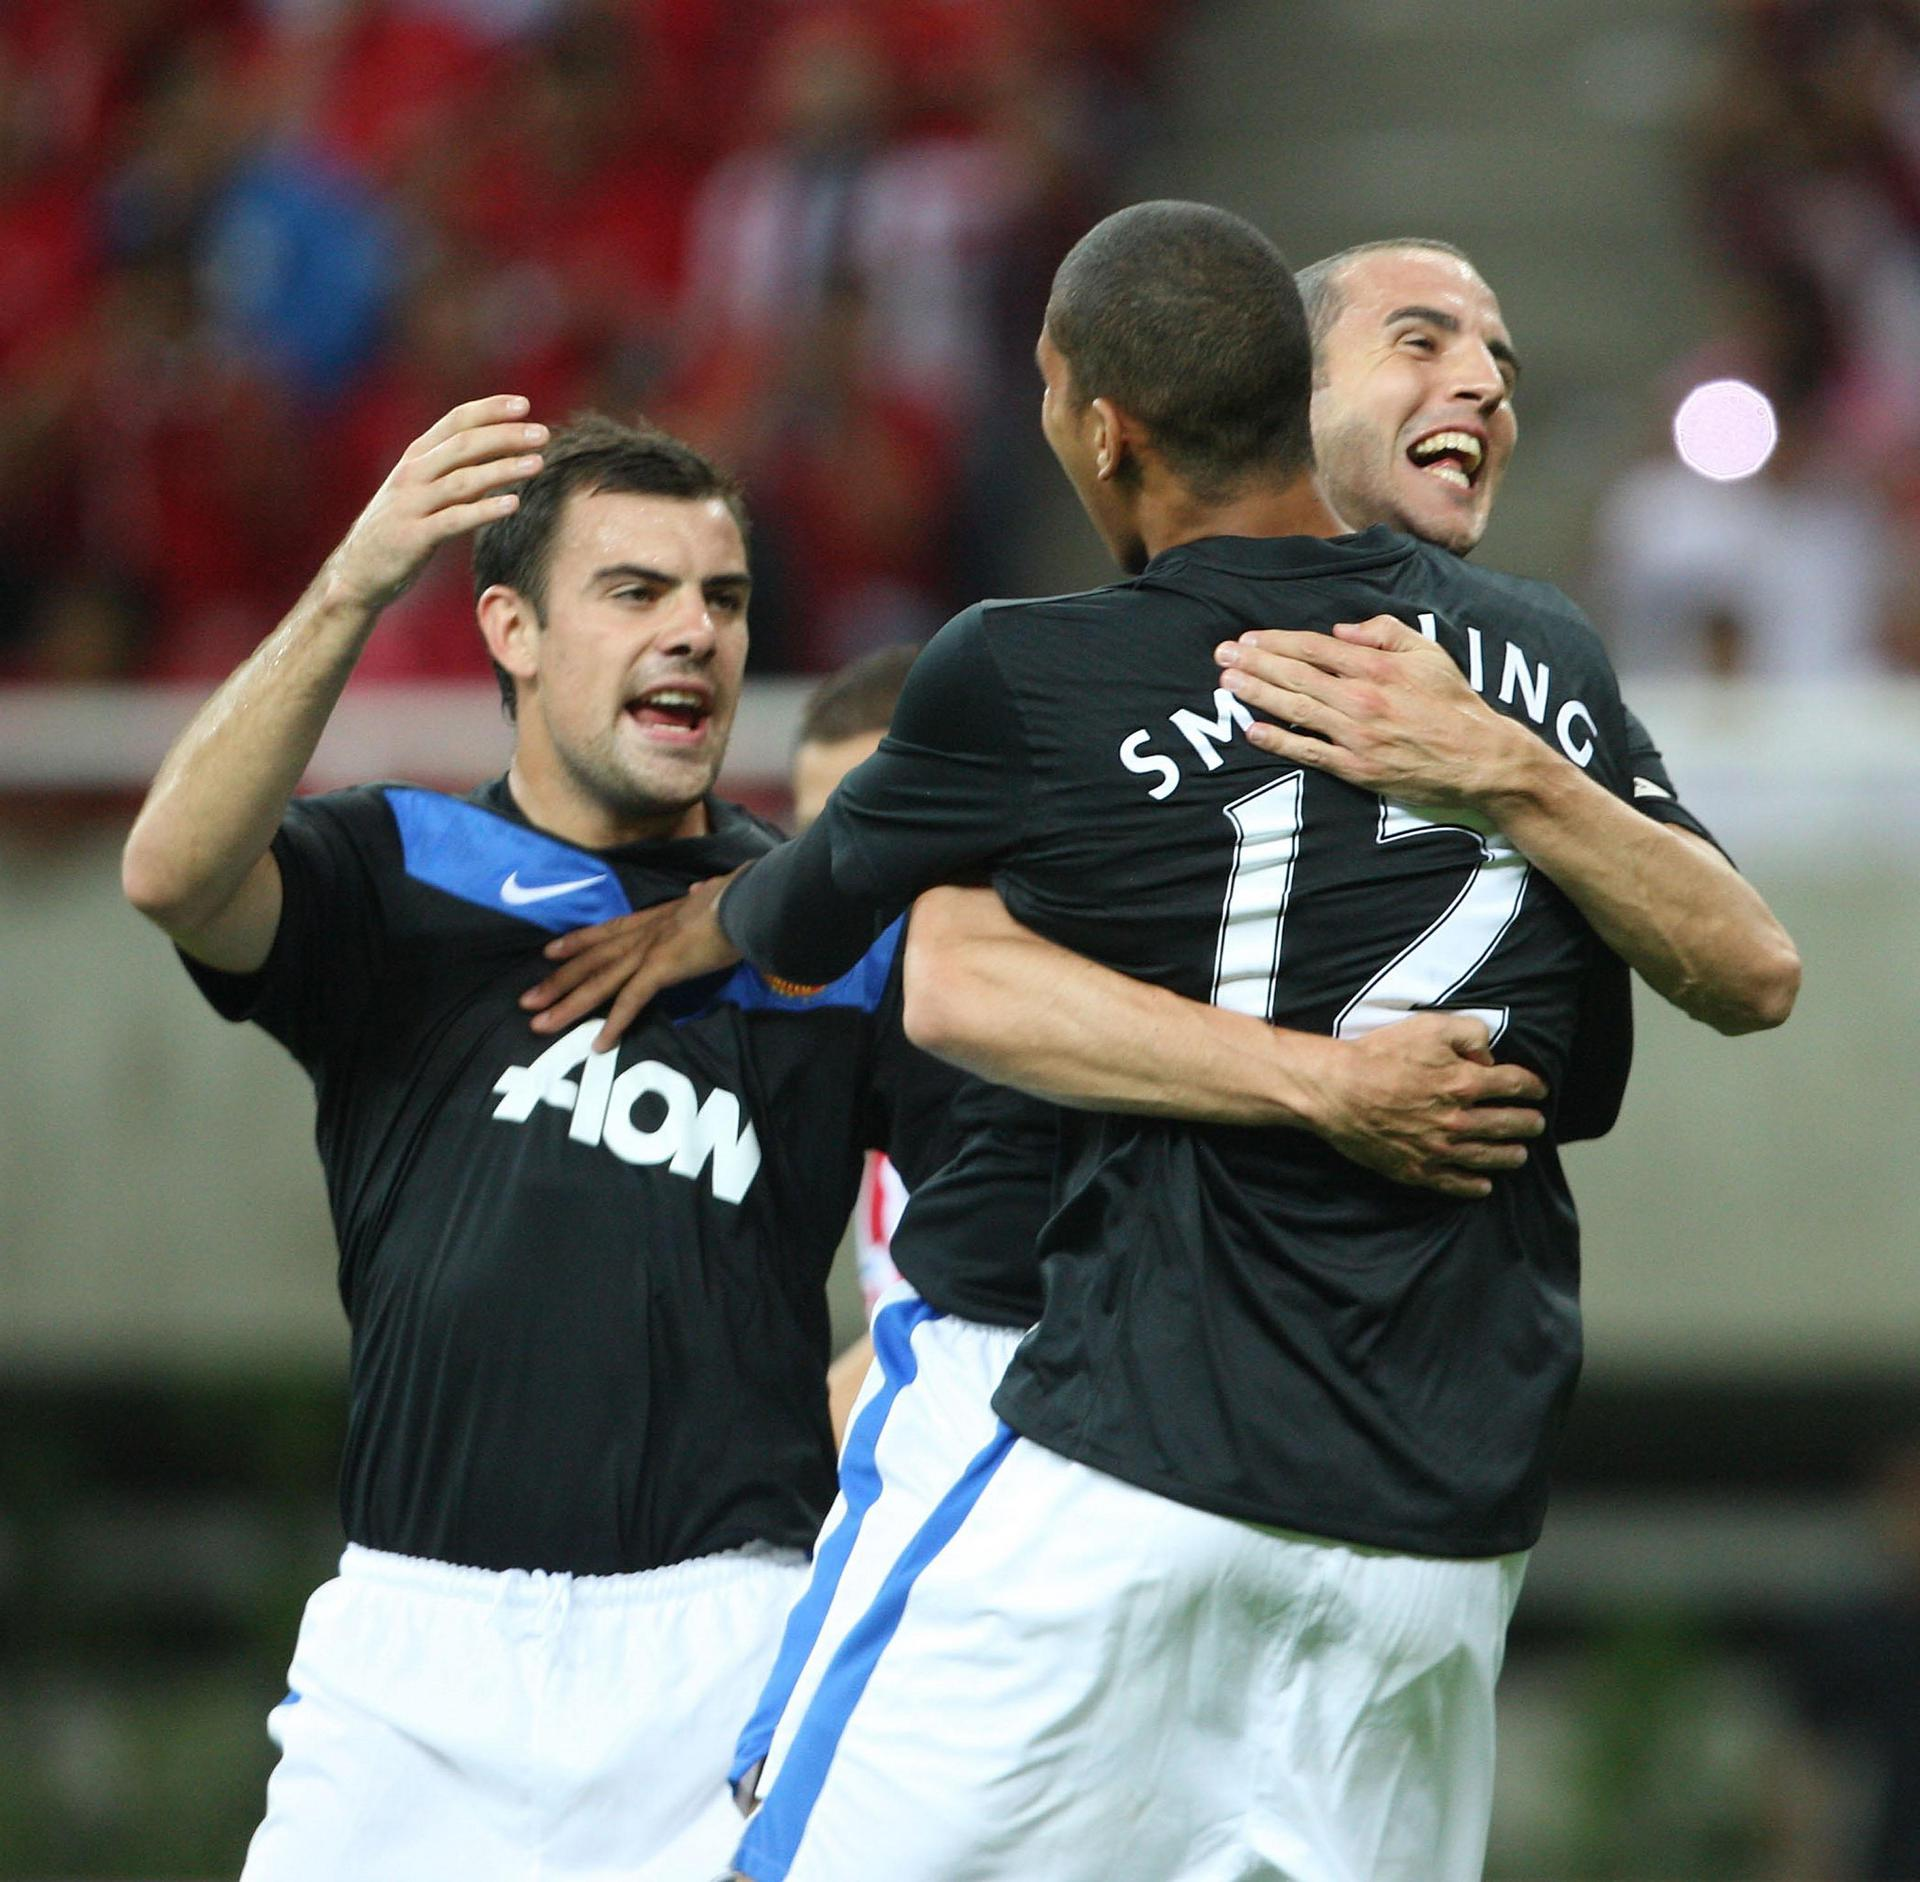 Chris Smalling is hugged by John O'Shea as Darron Gibson looks on.